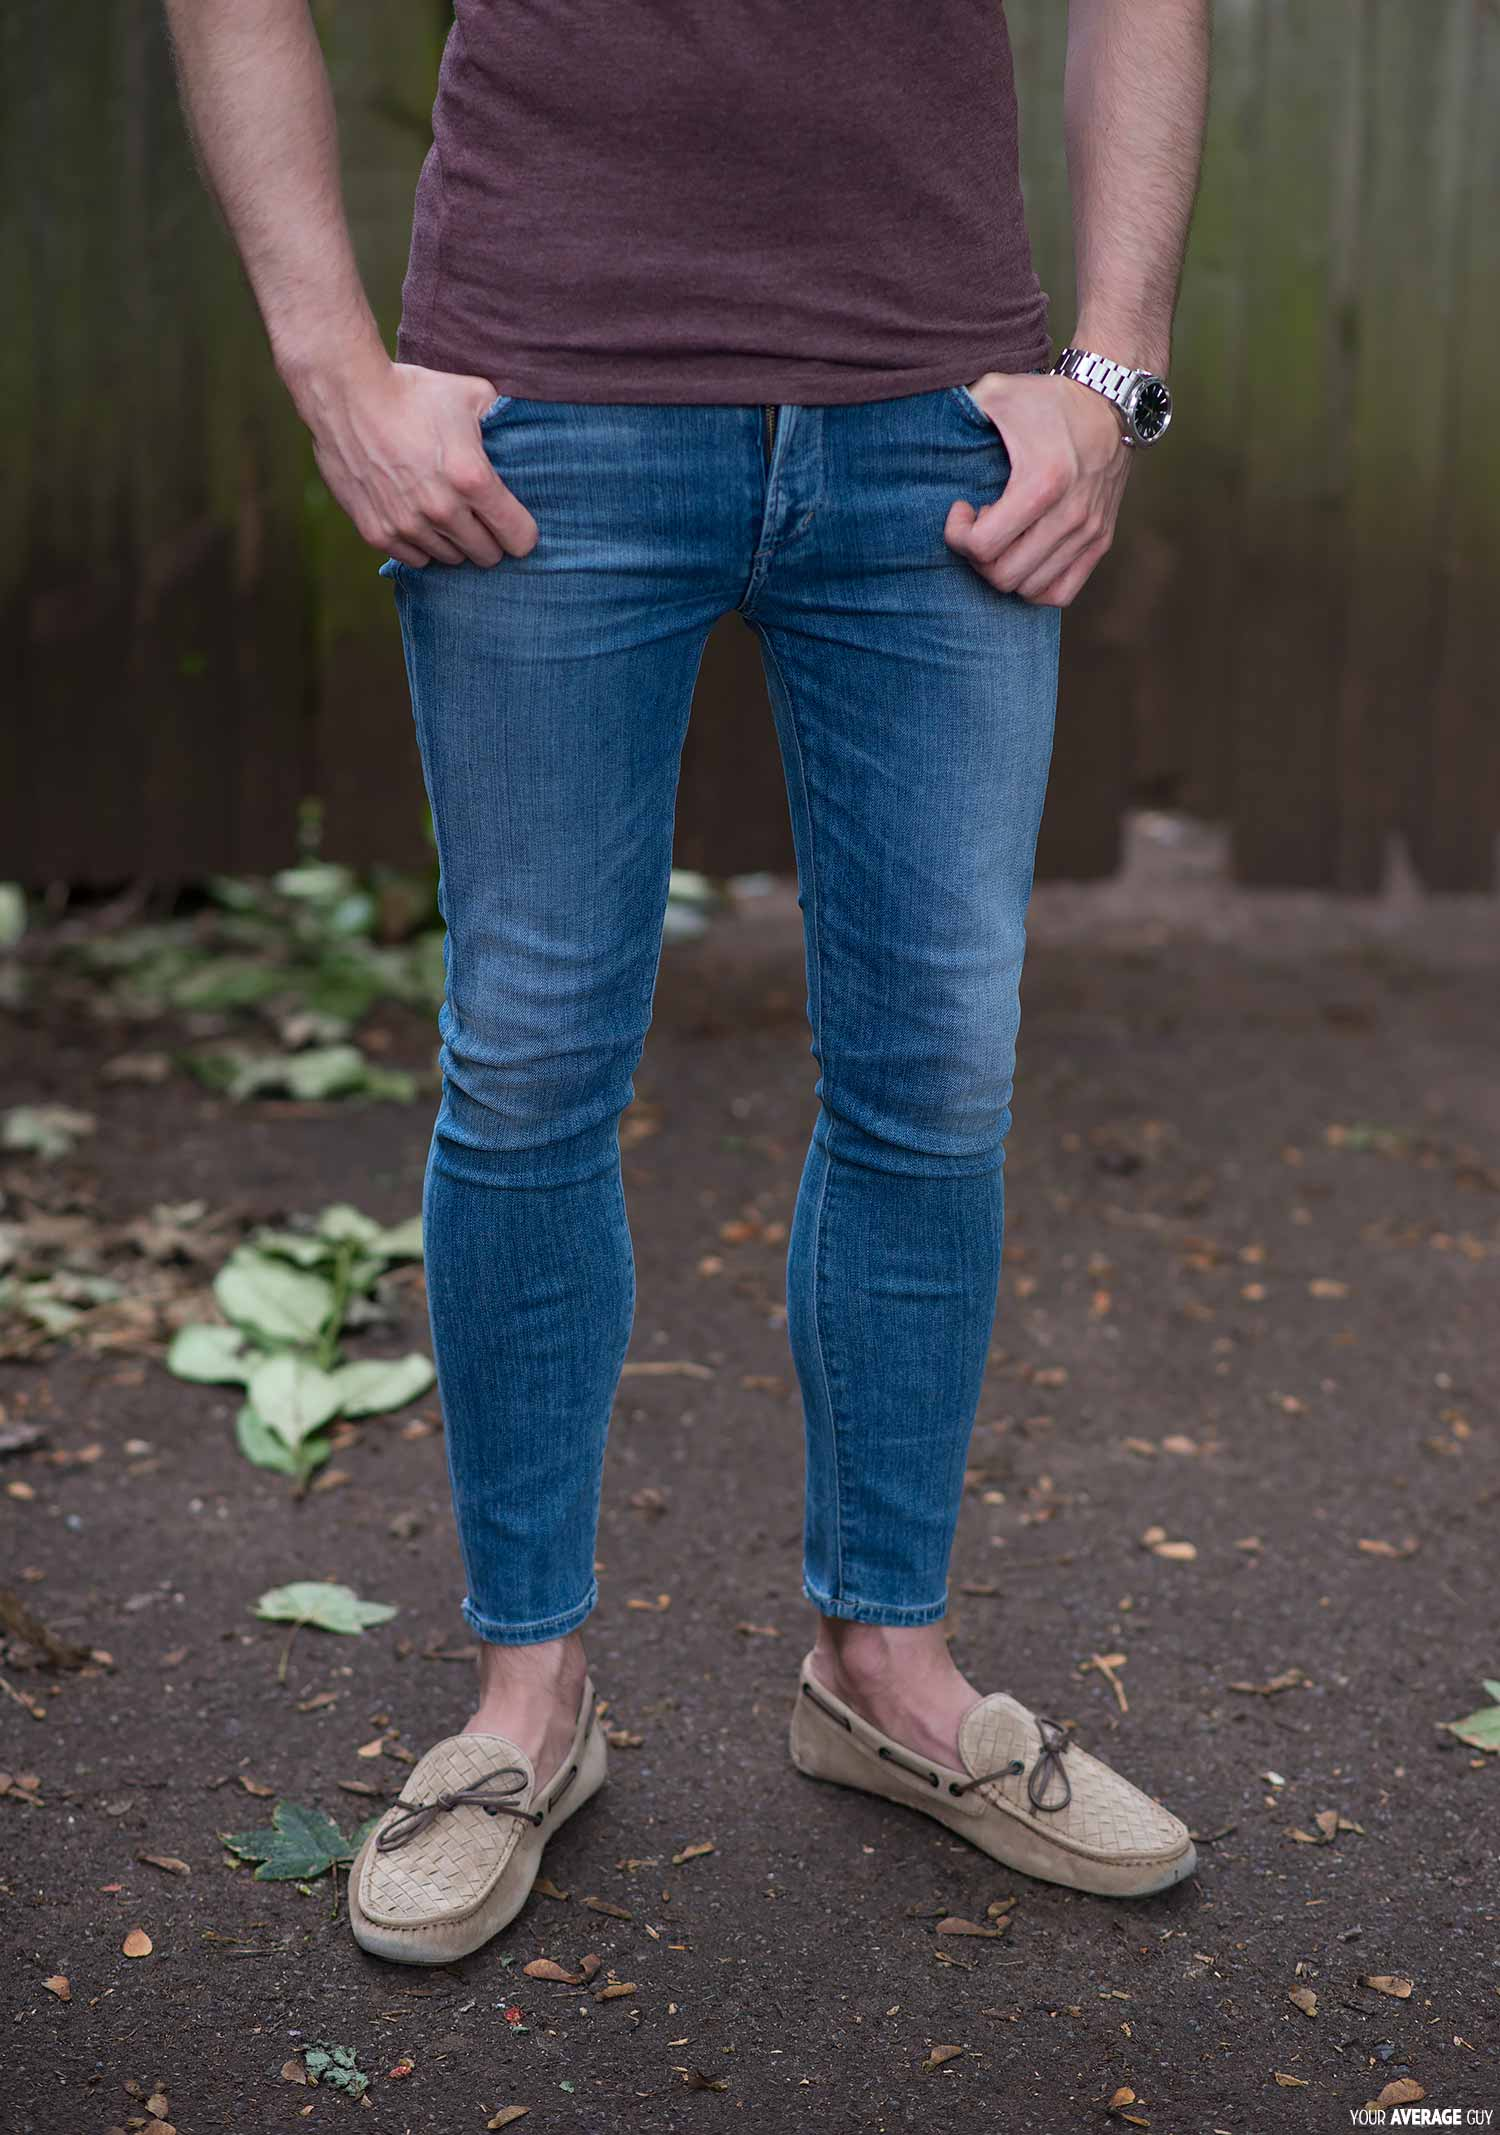 men wearing womens jeans